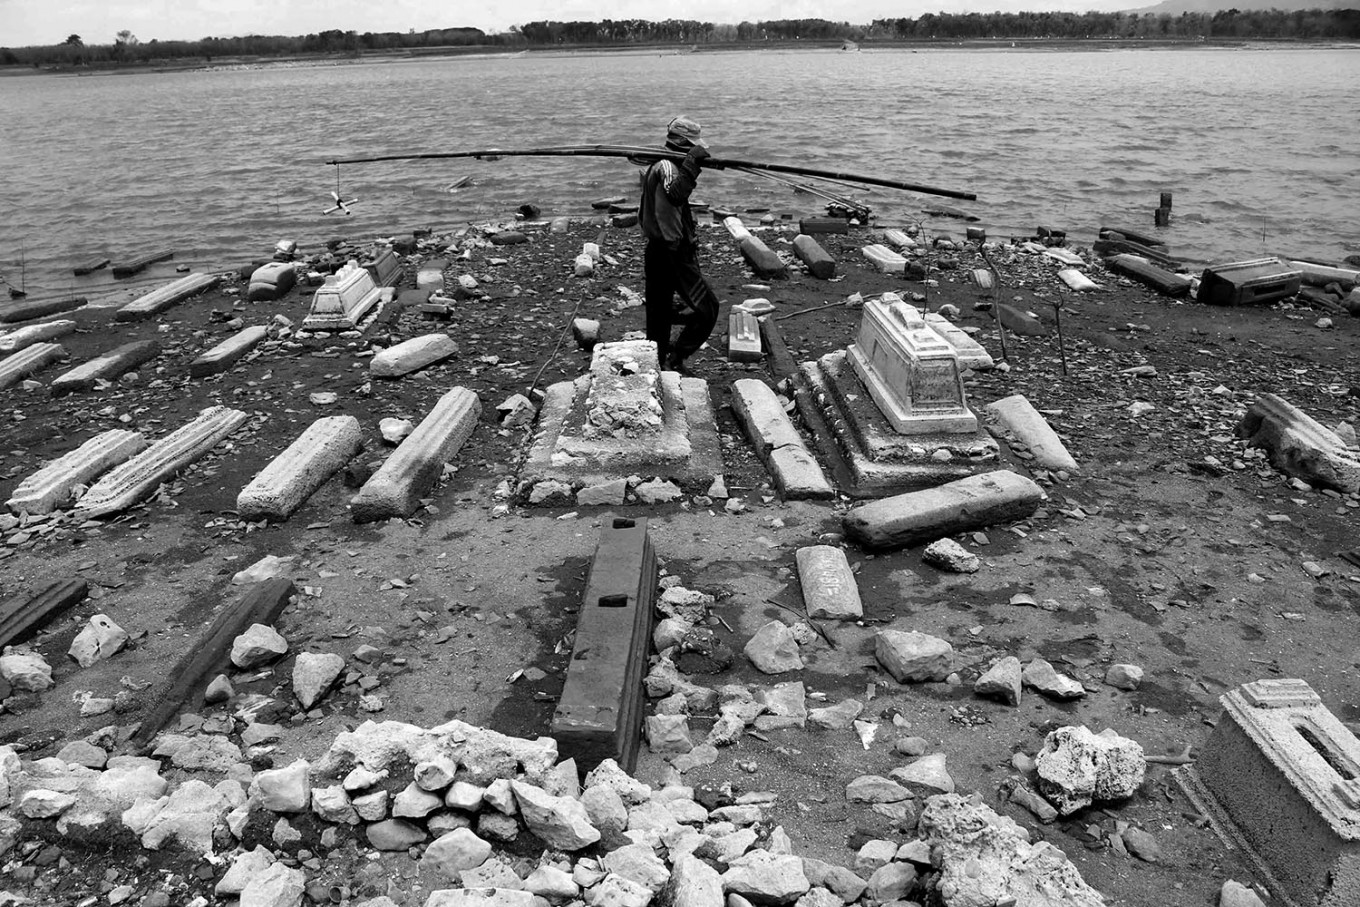 A villager carries his fishing rod, passing graves at the former area of Kenteng village in the Gajah Mungkur dam area. JP/Maksum Nur Fauzan